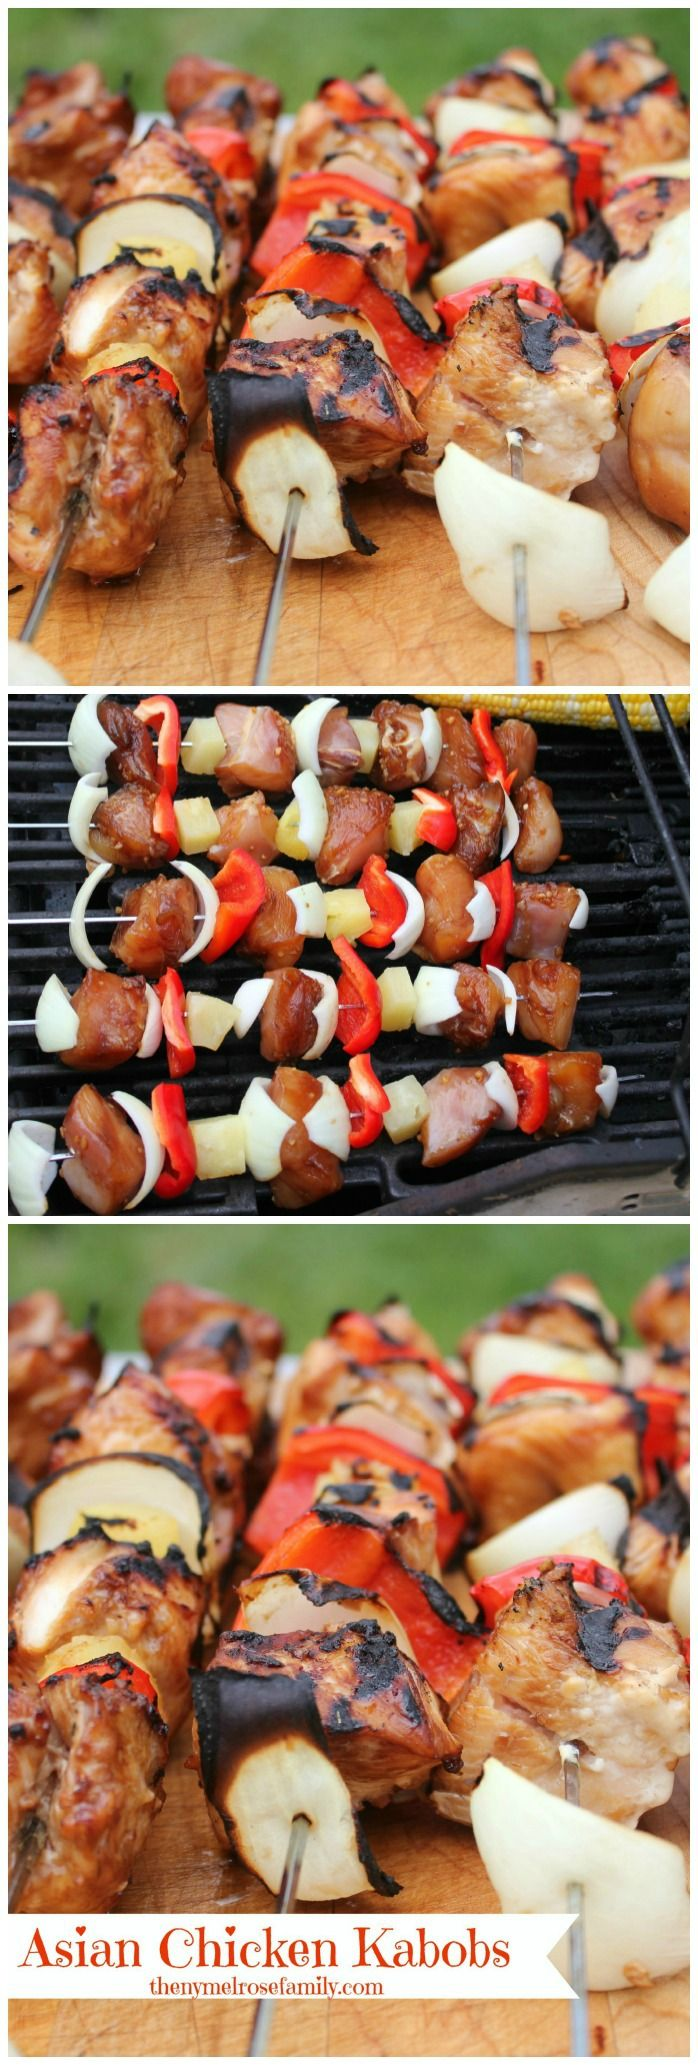 Asian Chicken Kabobs *** soak Skewers overnight, cook in oven at 400 degrees if grill doesn't work)